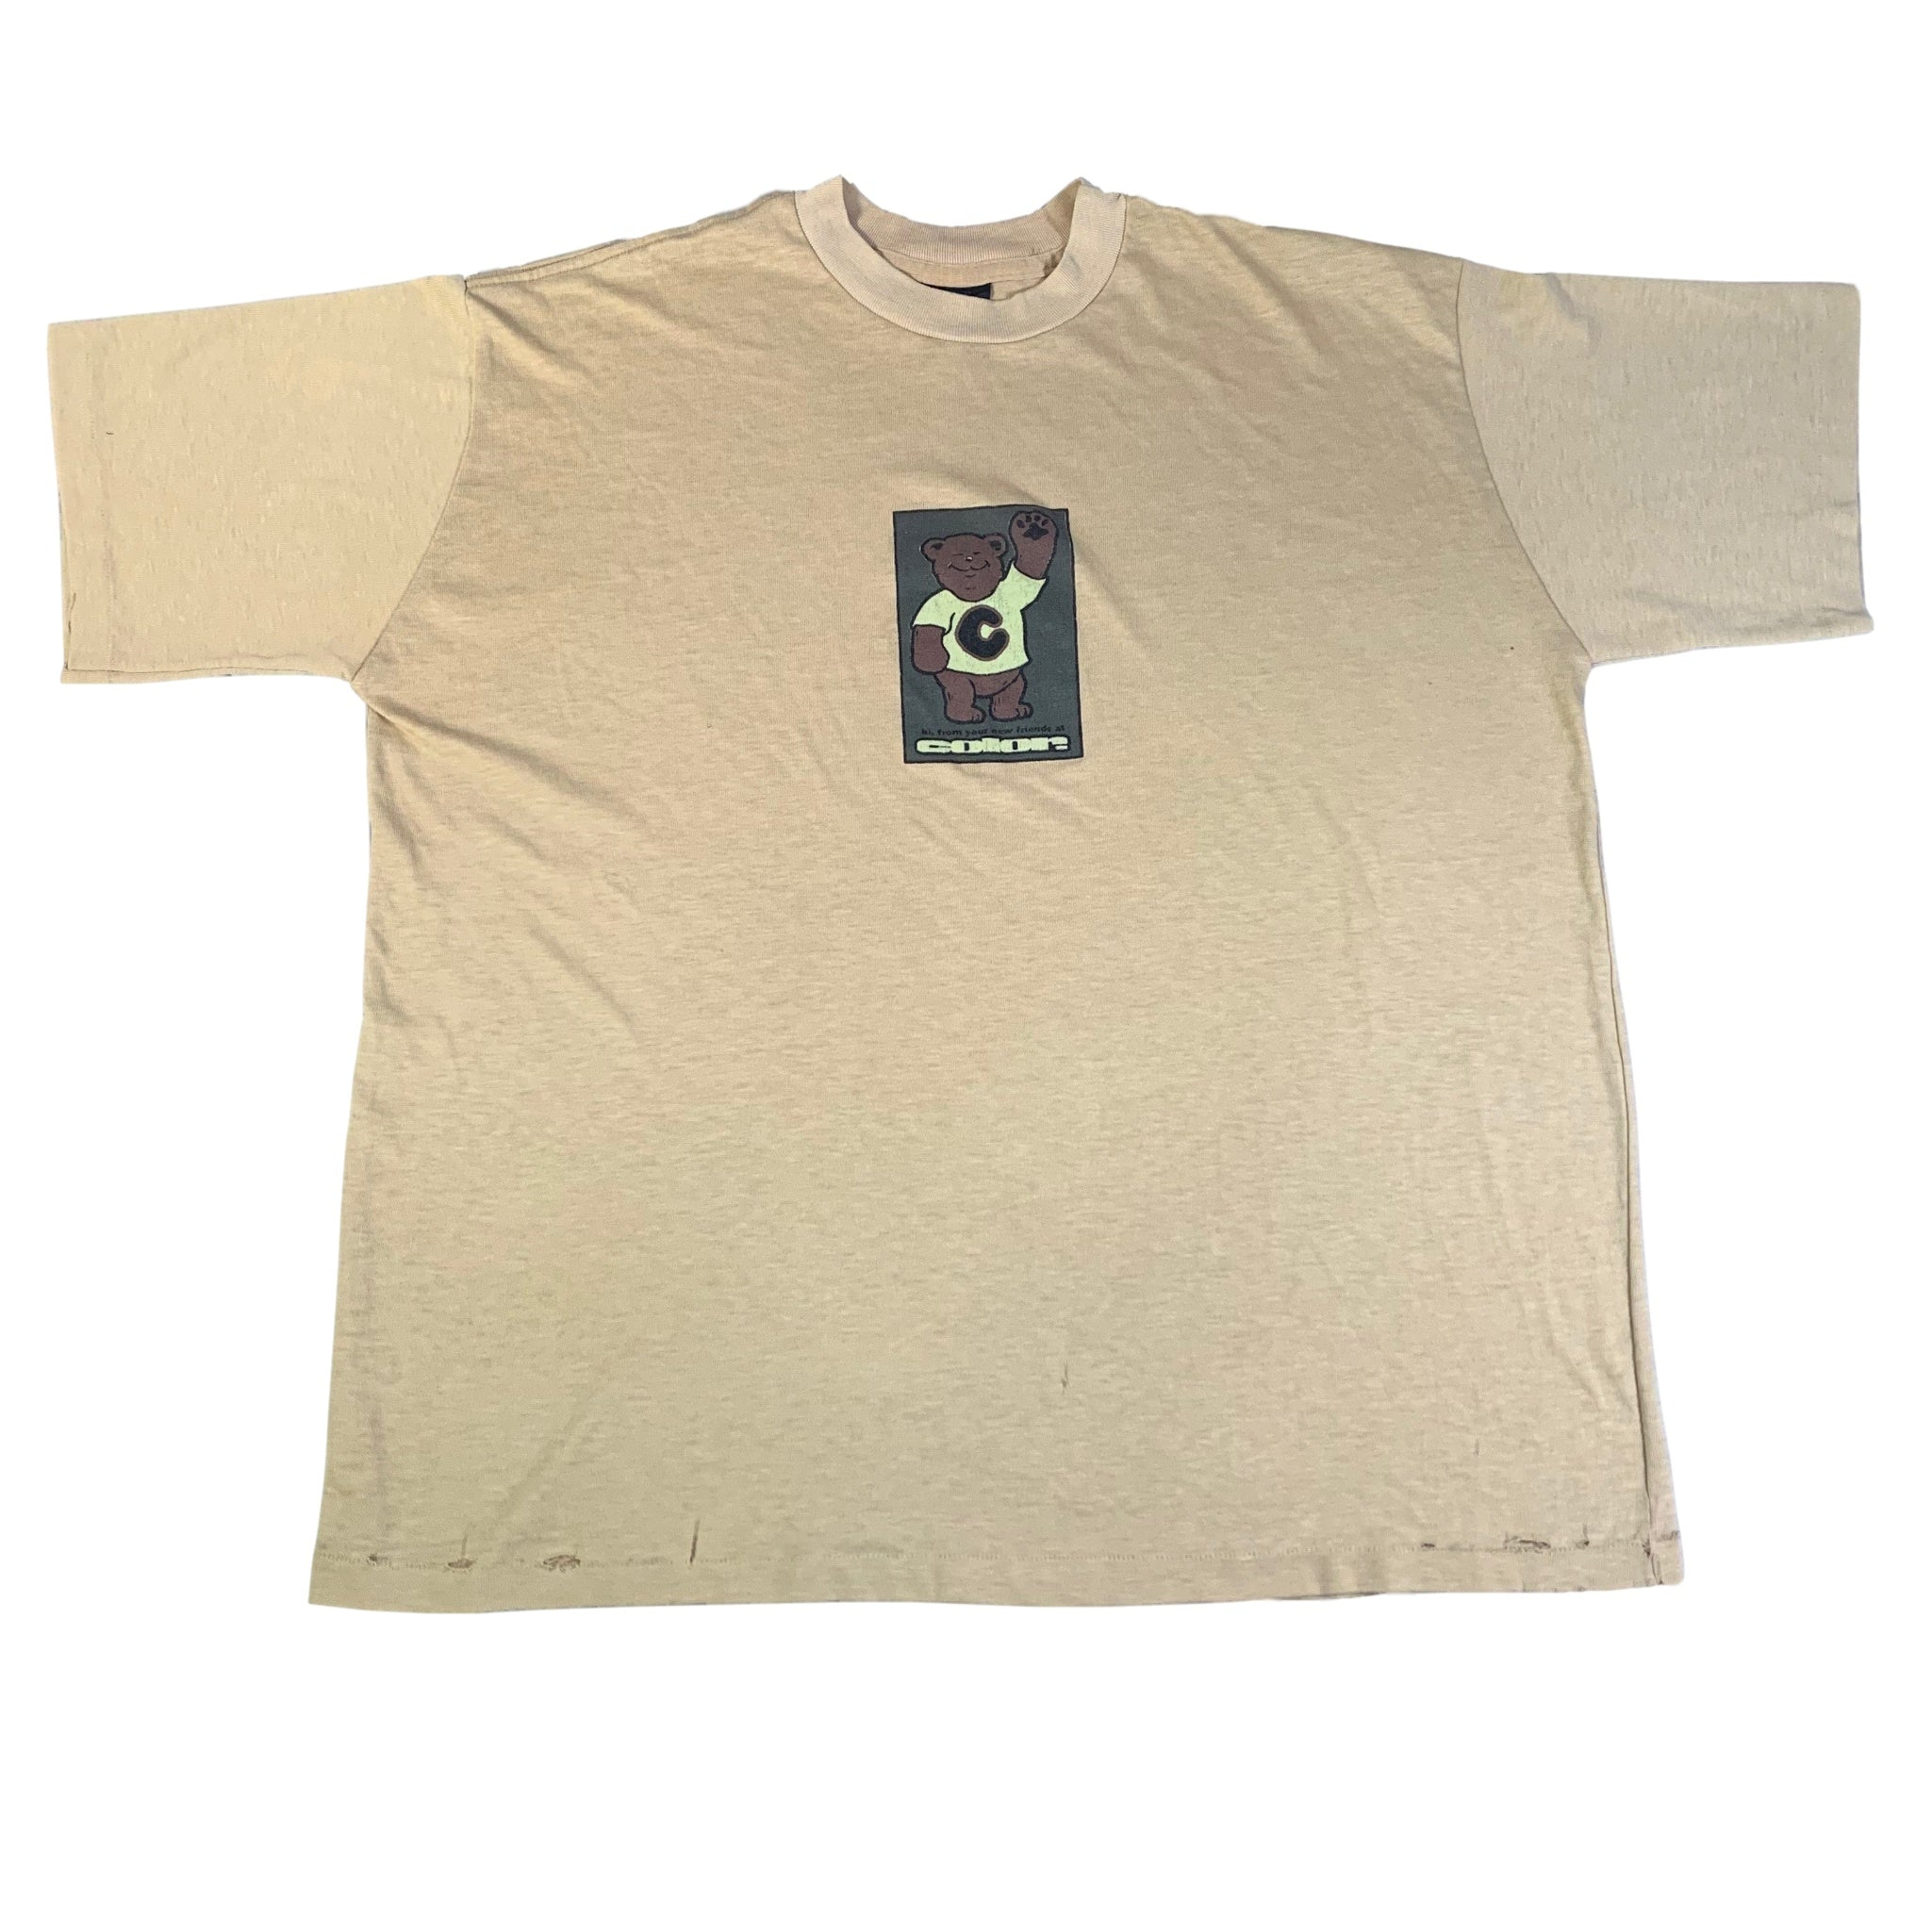 "Vintage Color Skateboards ""The Color Bear'"" T-Shirt"